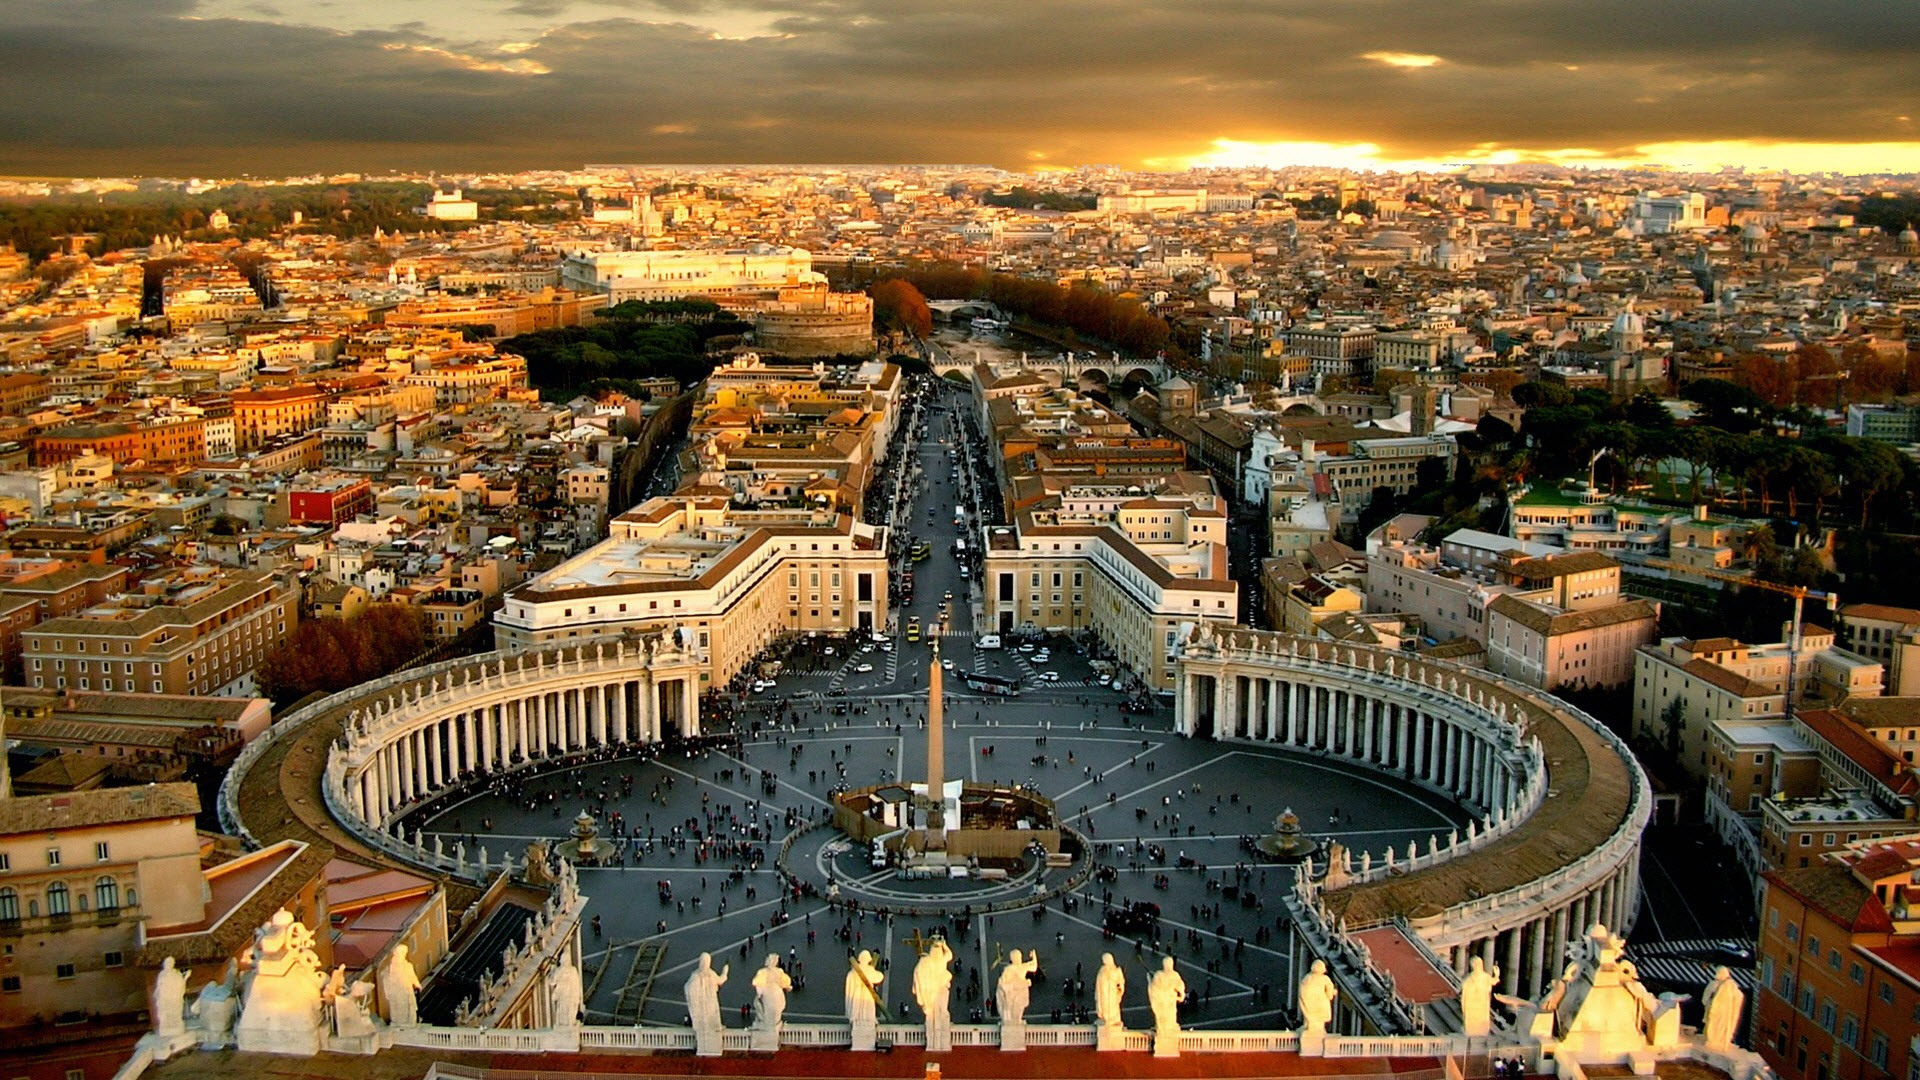 Vatican City desktop wallpaper 1920x1080